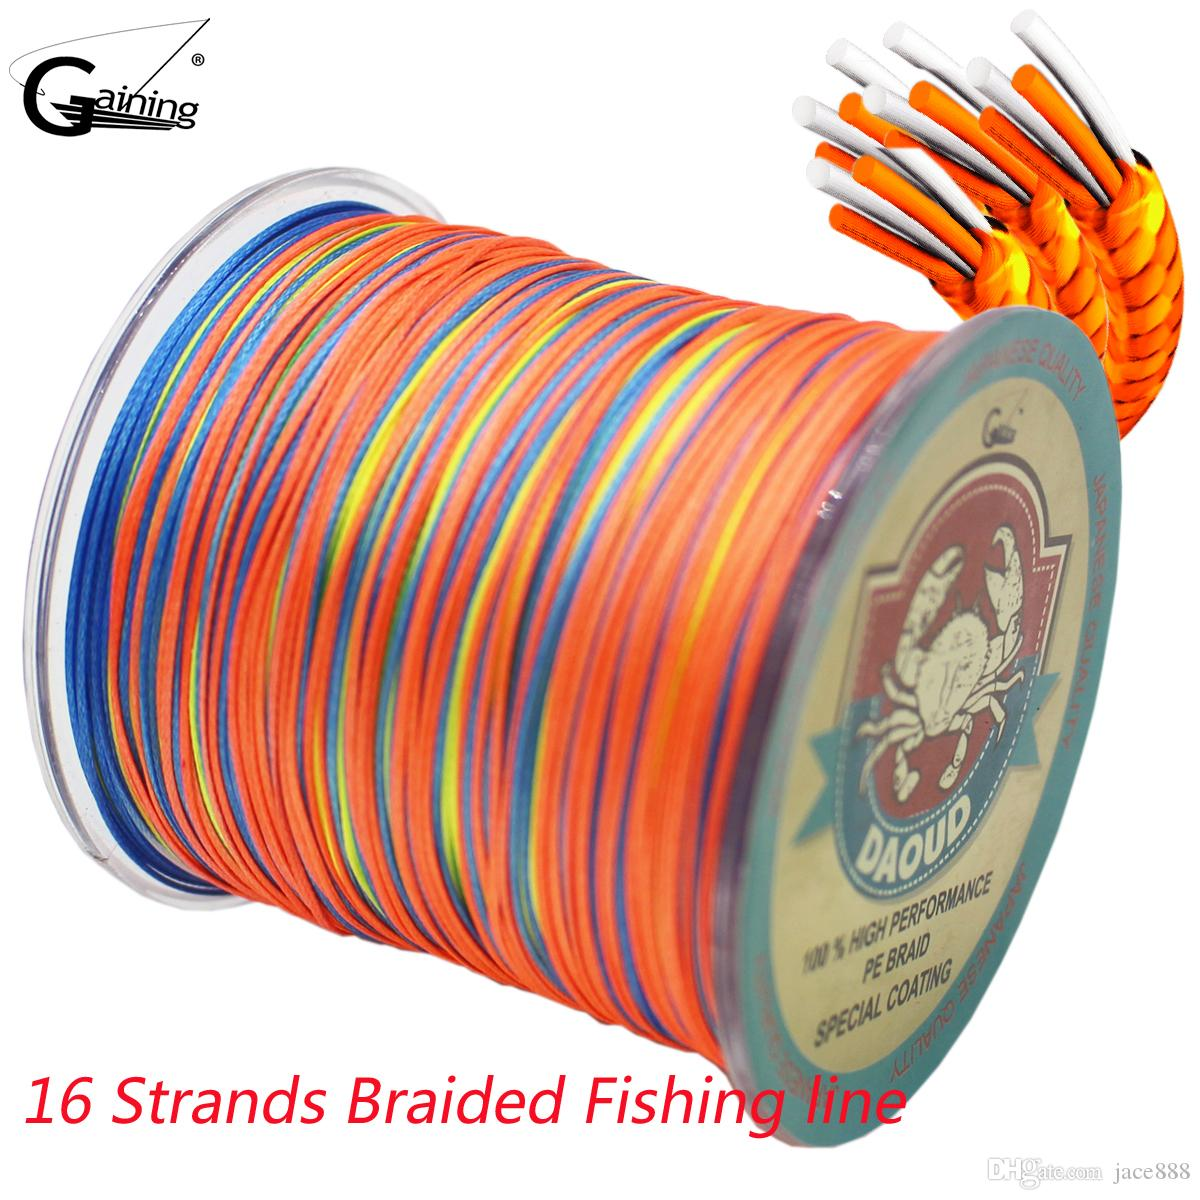 Braided Fishing Line 300M 16 Strands Multicolor Super Power Japan ...